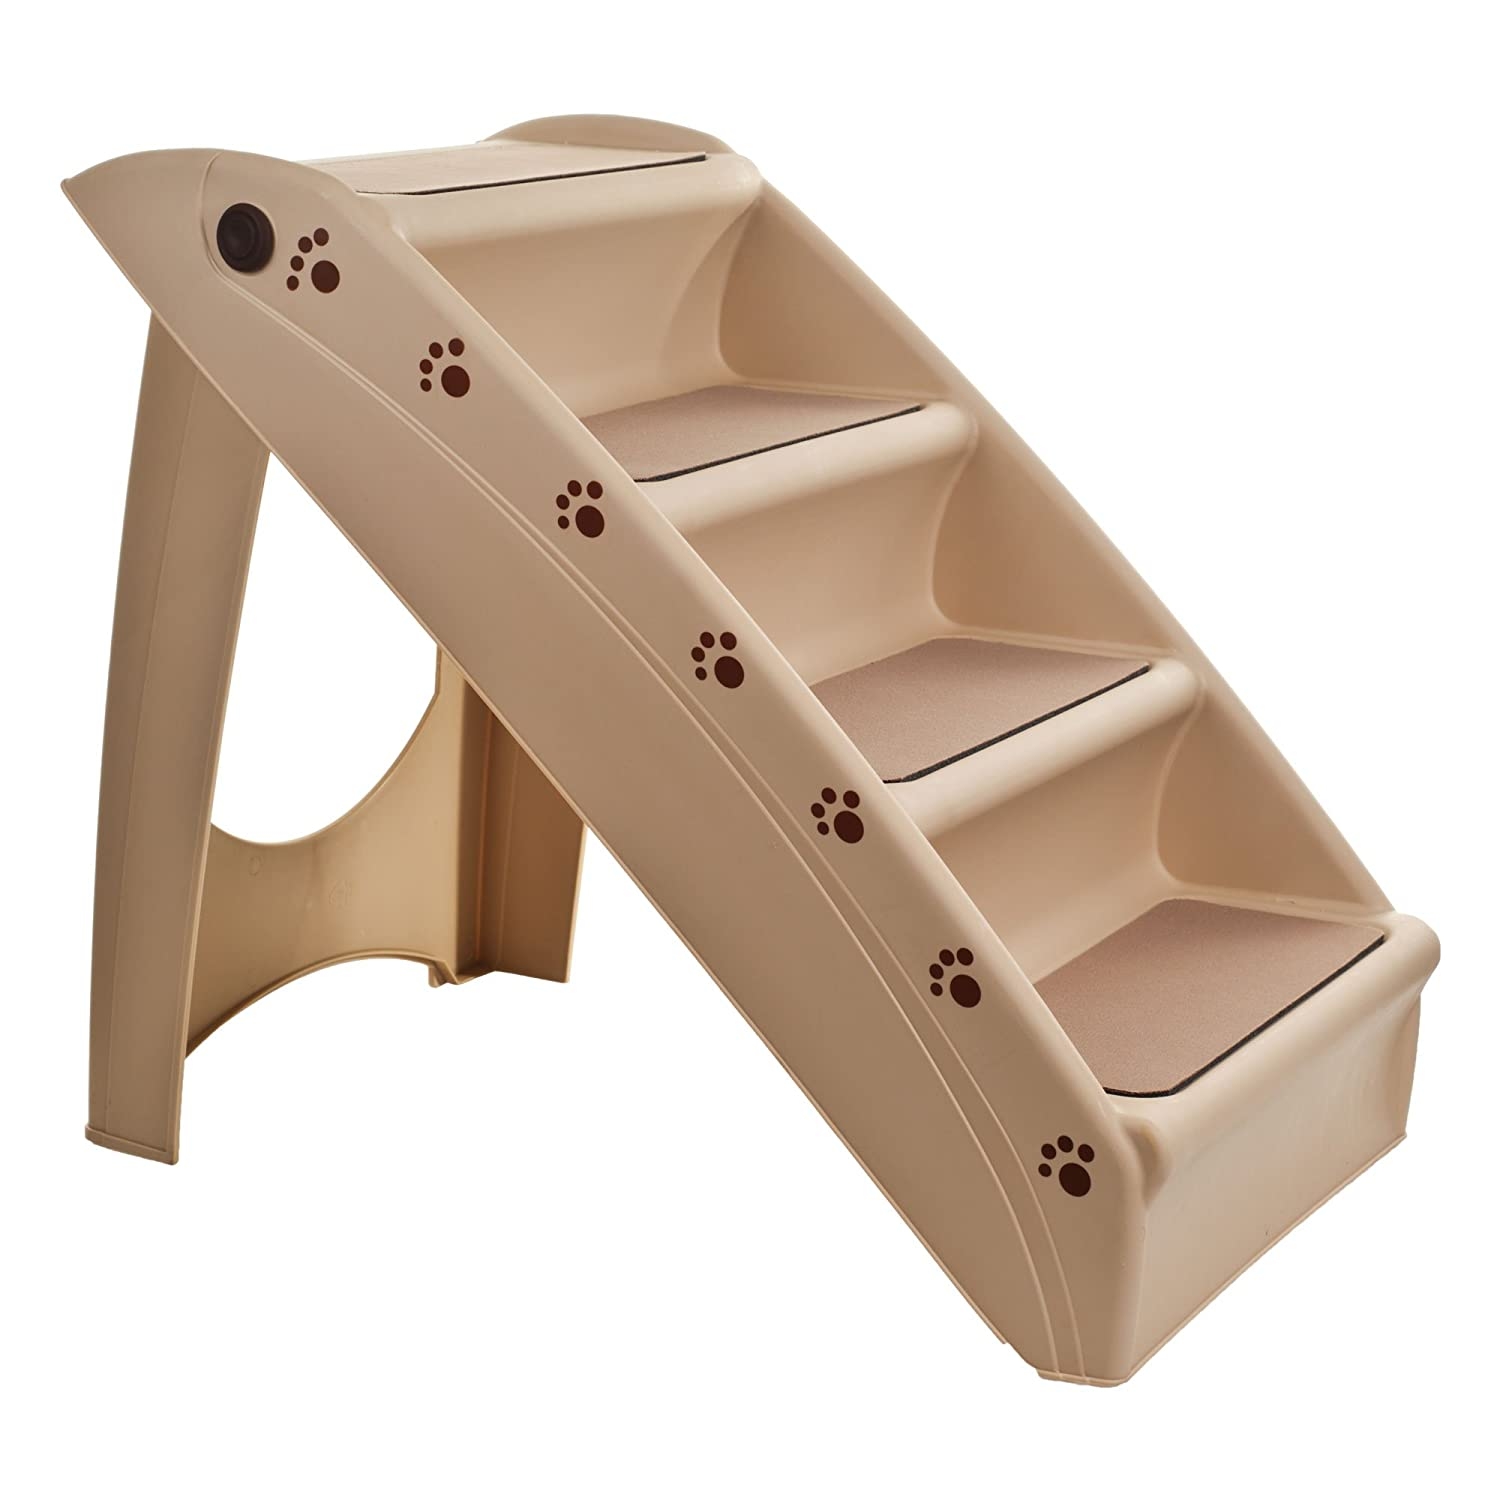 Beautiful Amazon.com : PETMAKER Folding Plastic Pet Stairs Durable Indoor Or Outdoor  4 Step Design With Built In Safety Features For Dogs Cats Home Travel By    TAN ...